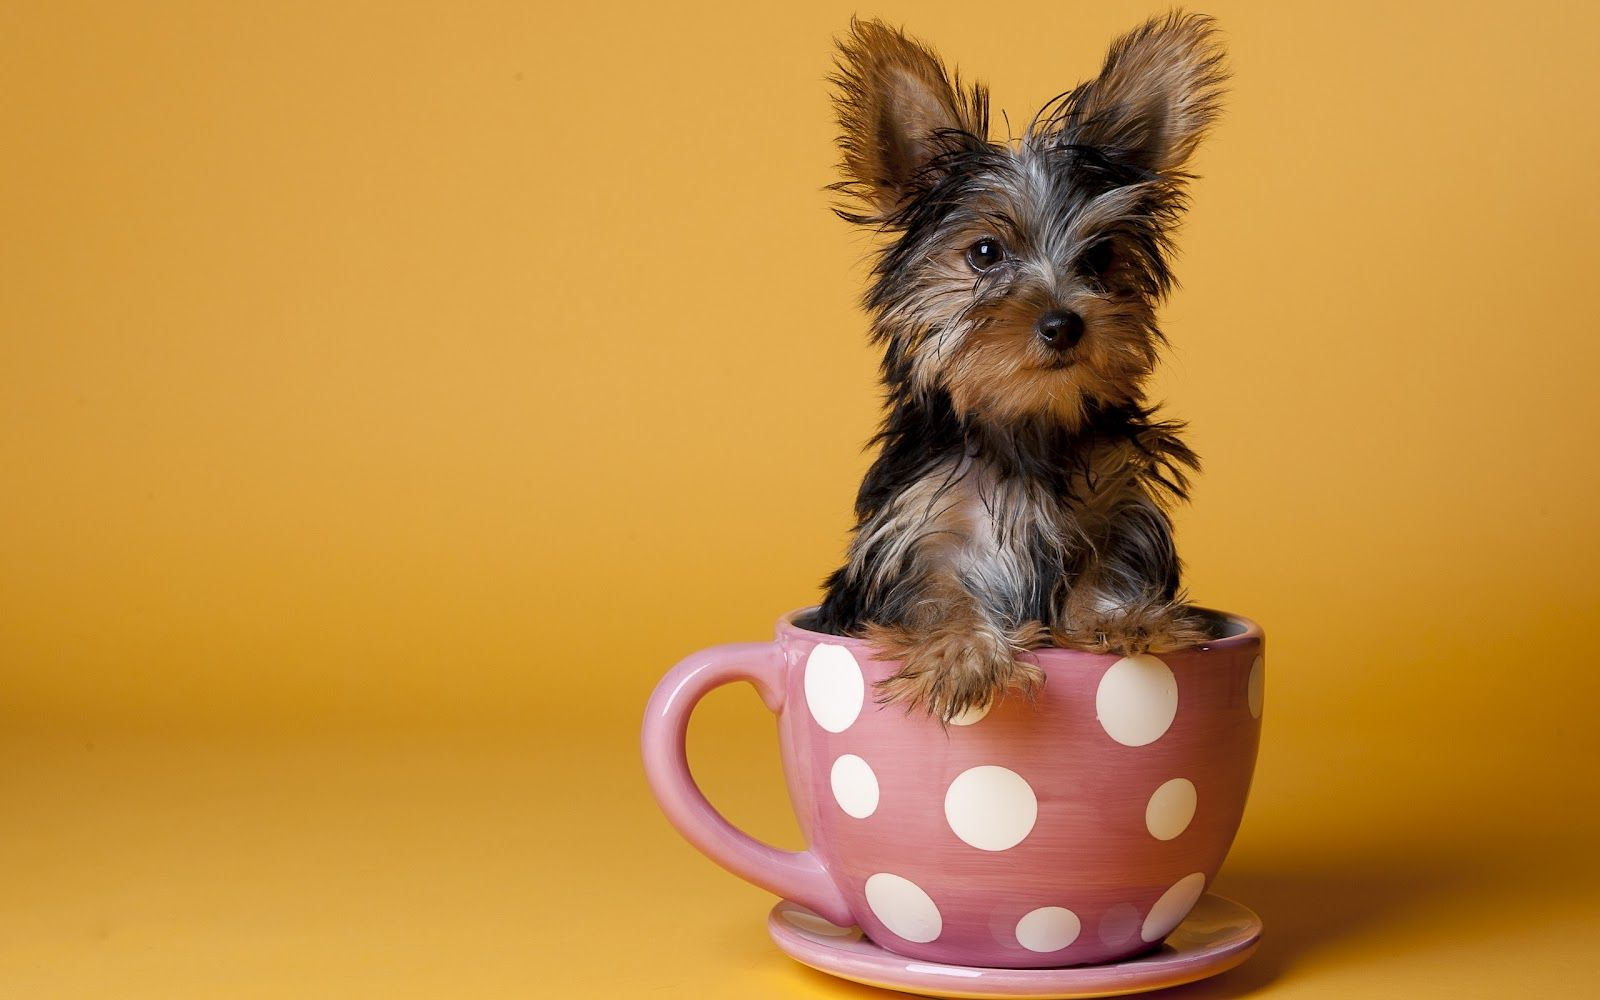 Yorkie clipart teacup yorkie. Cute yorkshire terrier clip